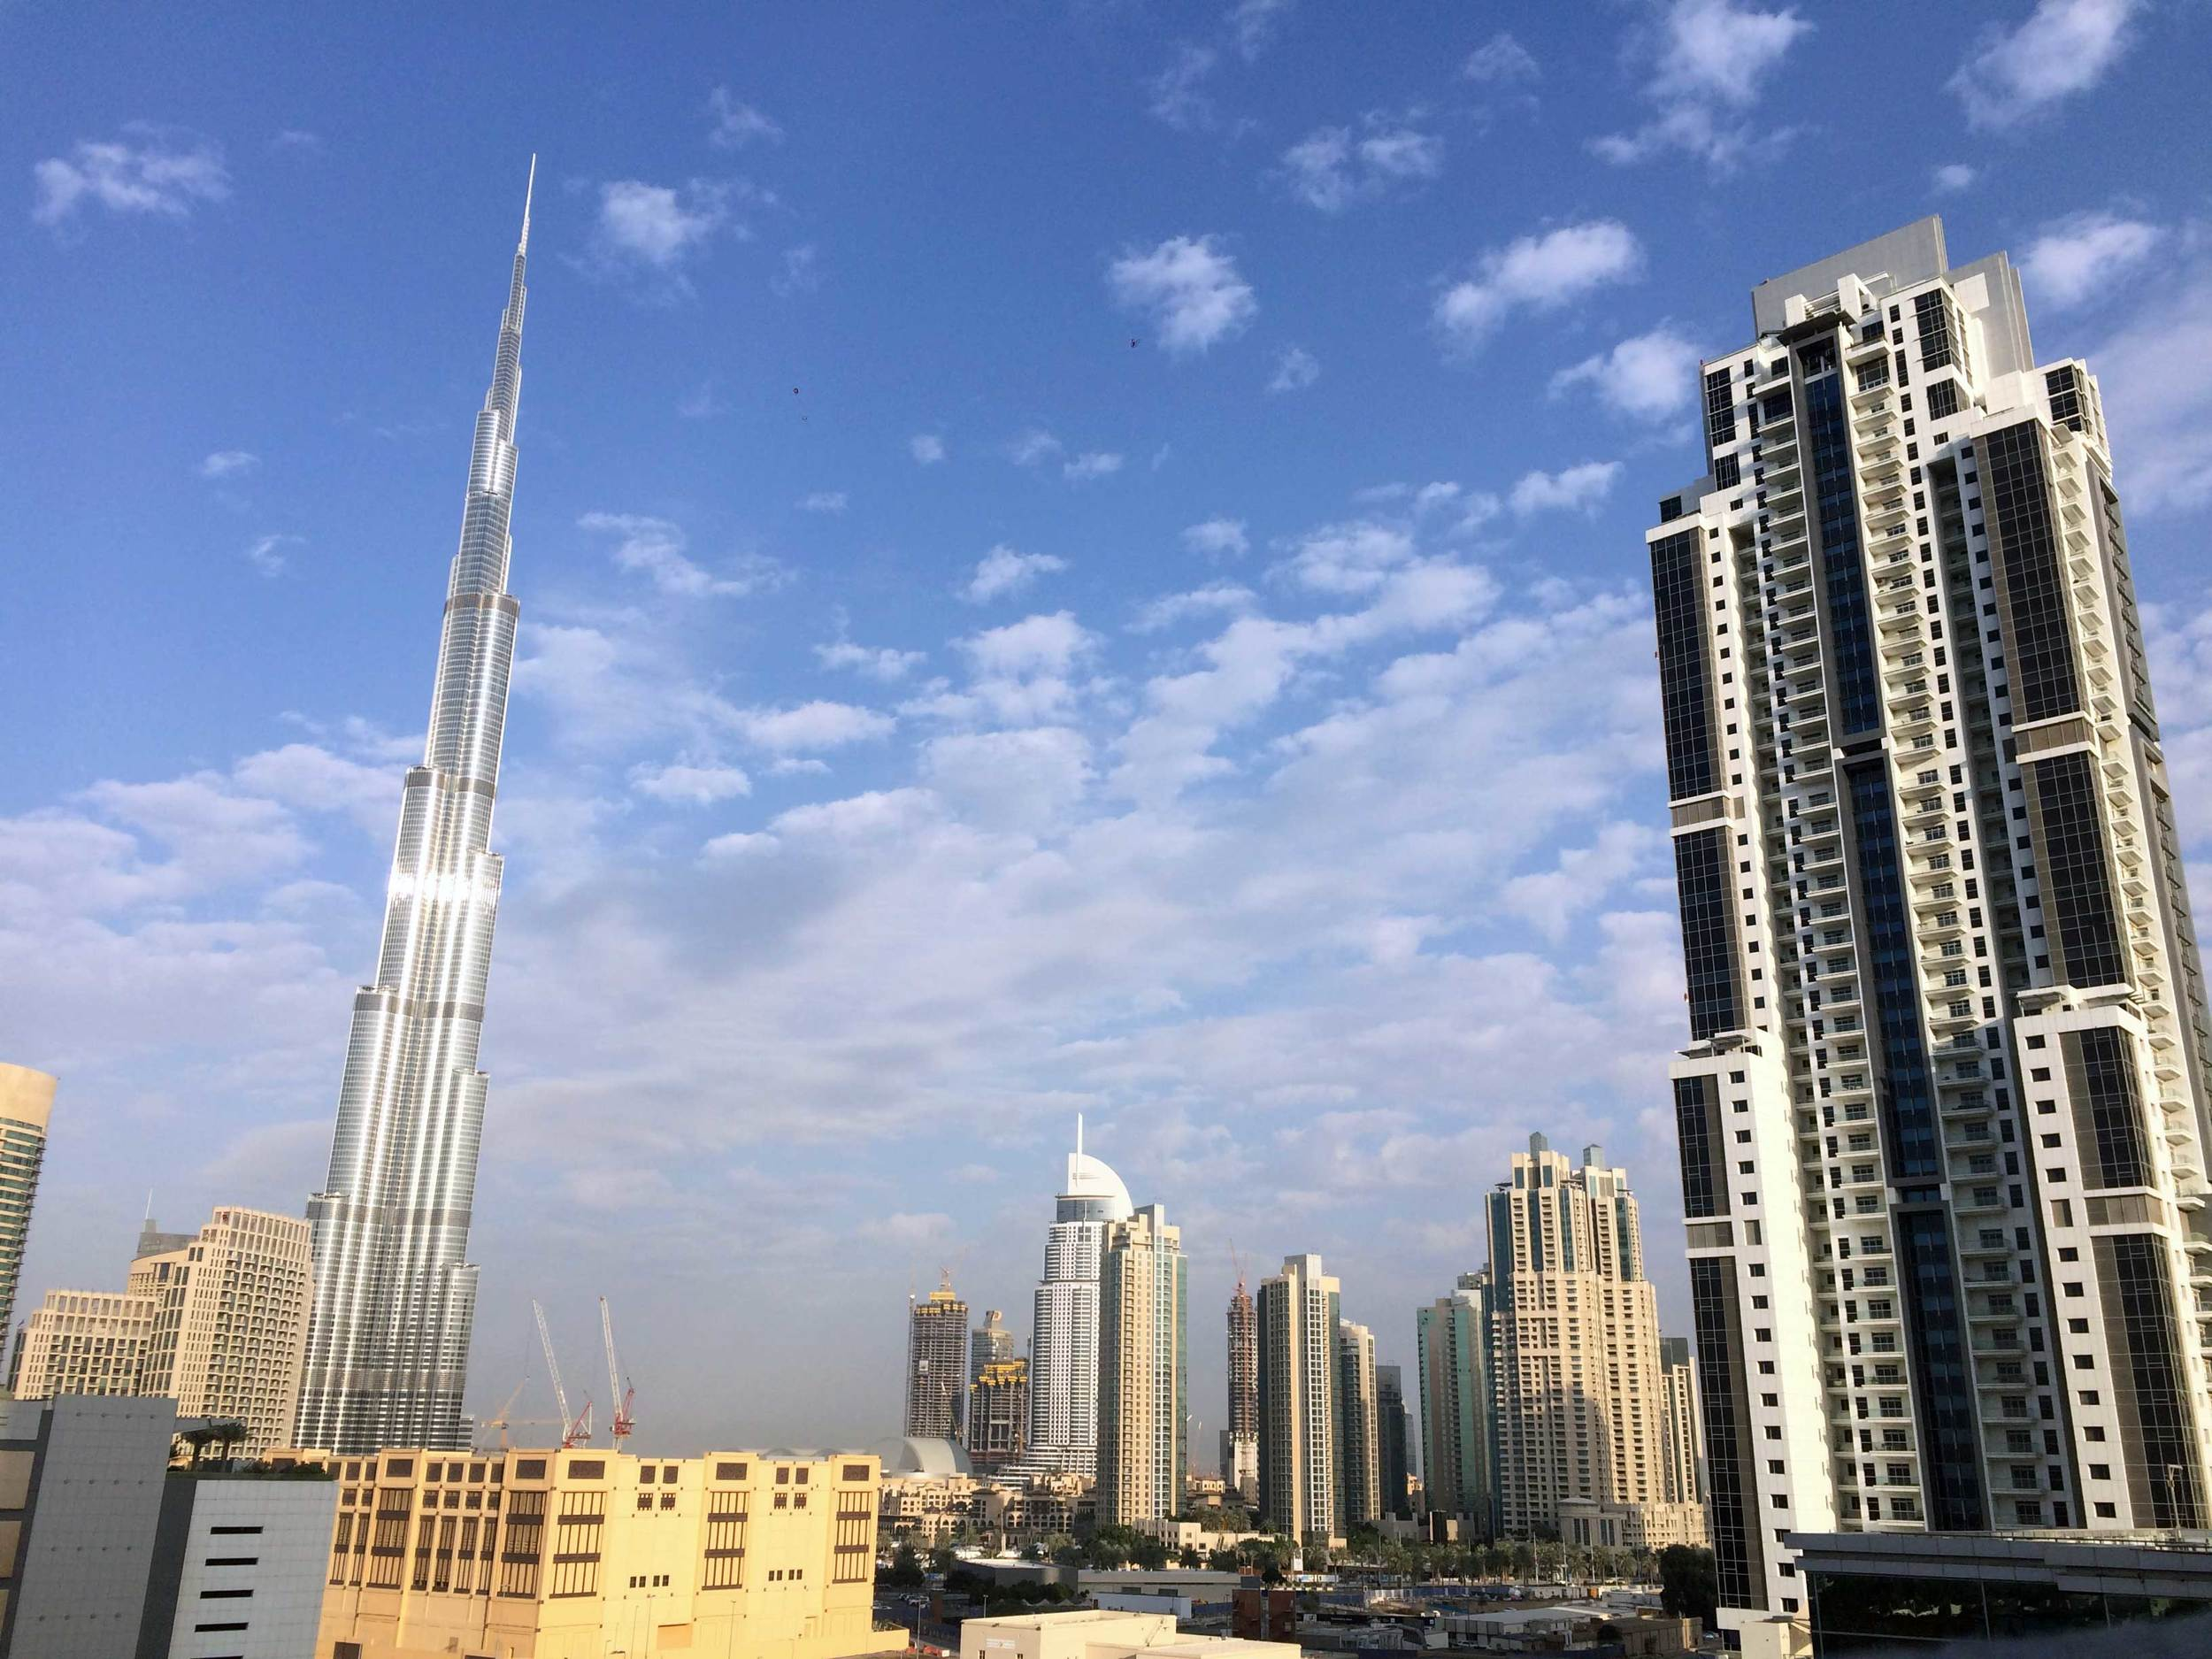 The largest man-made structure in the world - The Burj Khalifa